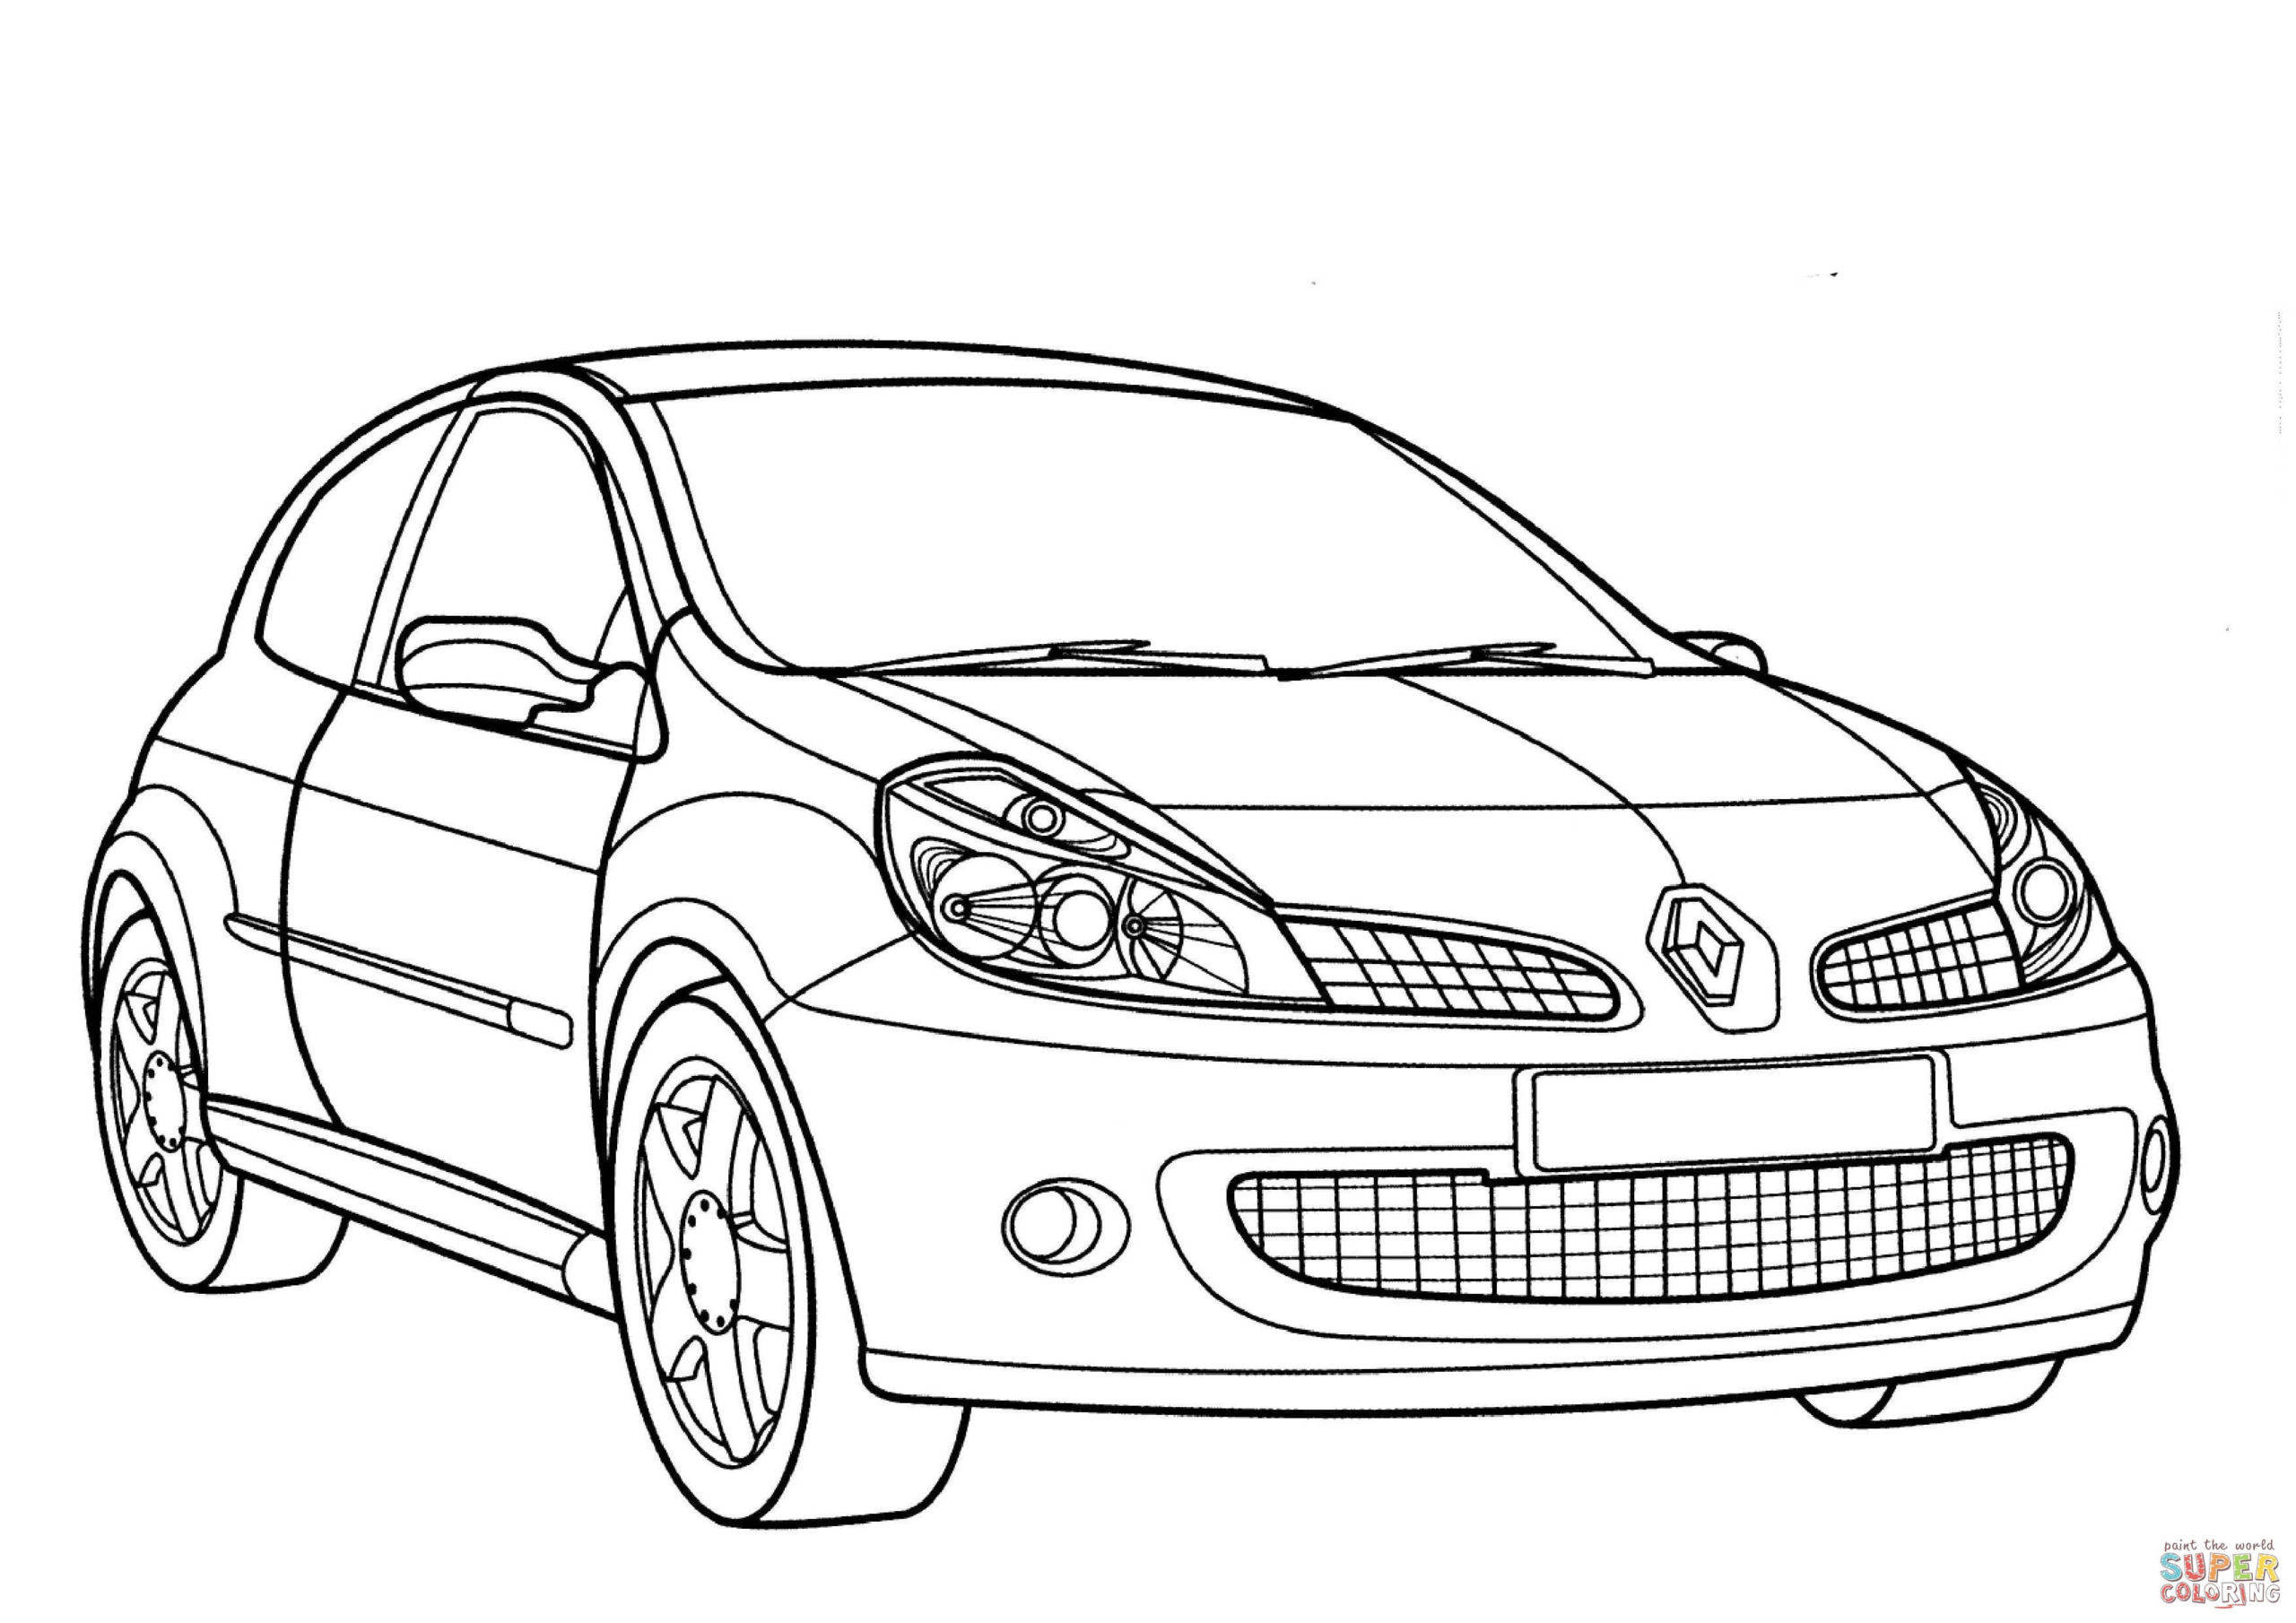 Renault-Clio-Sport-coloring-page